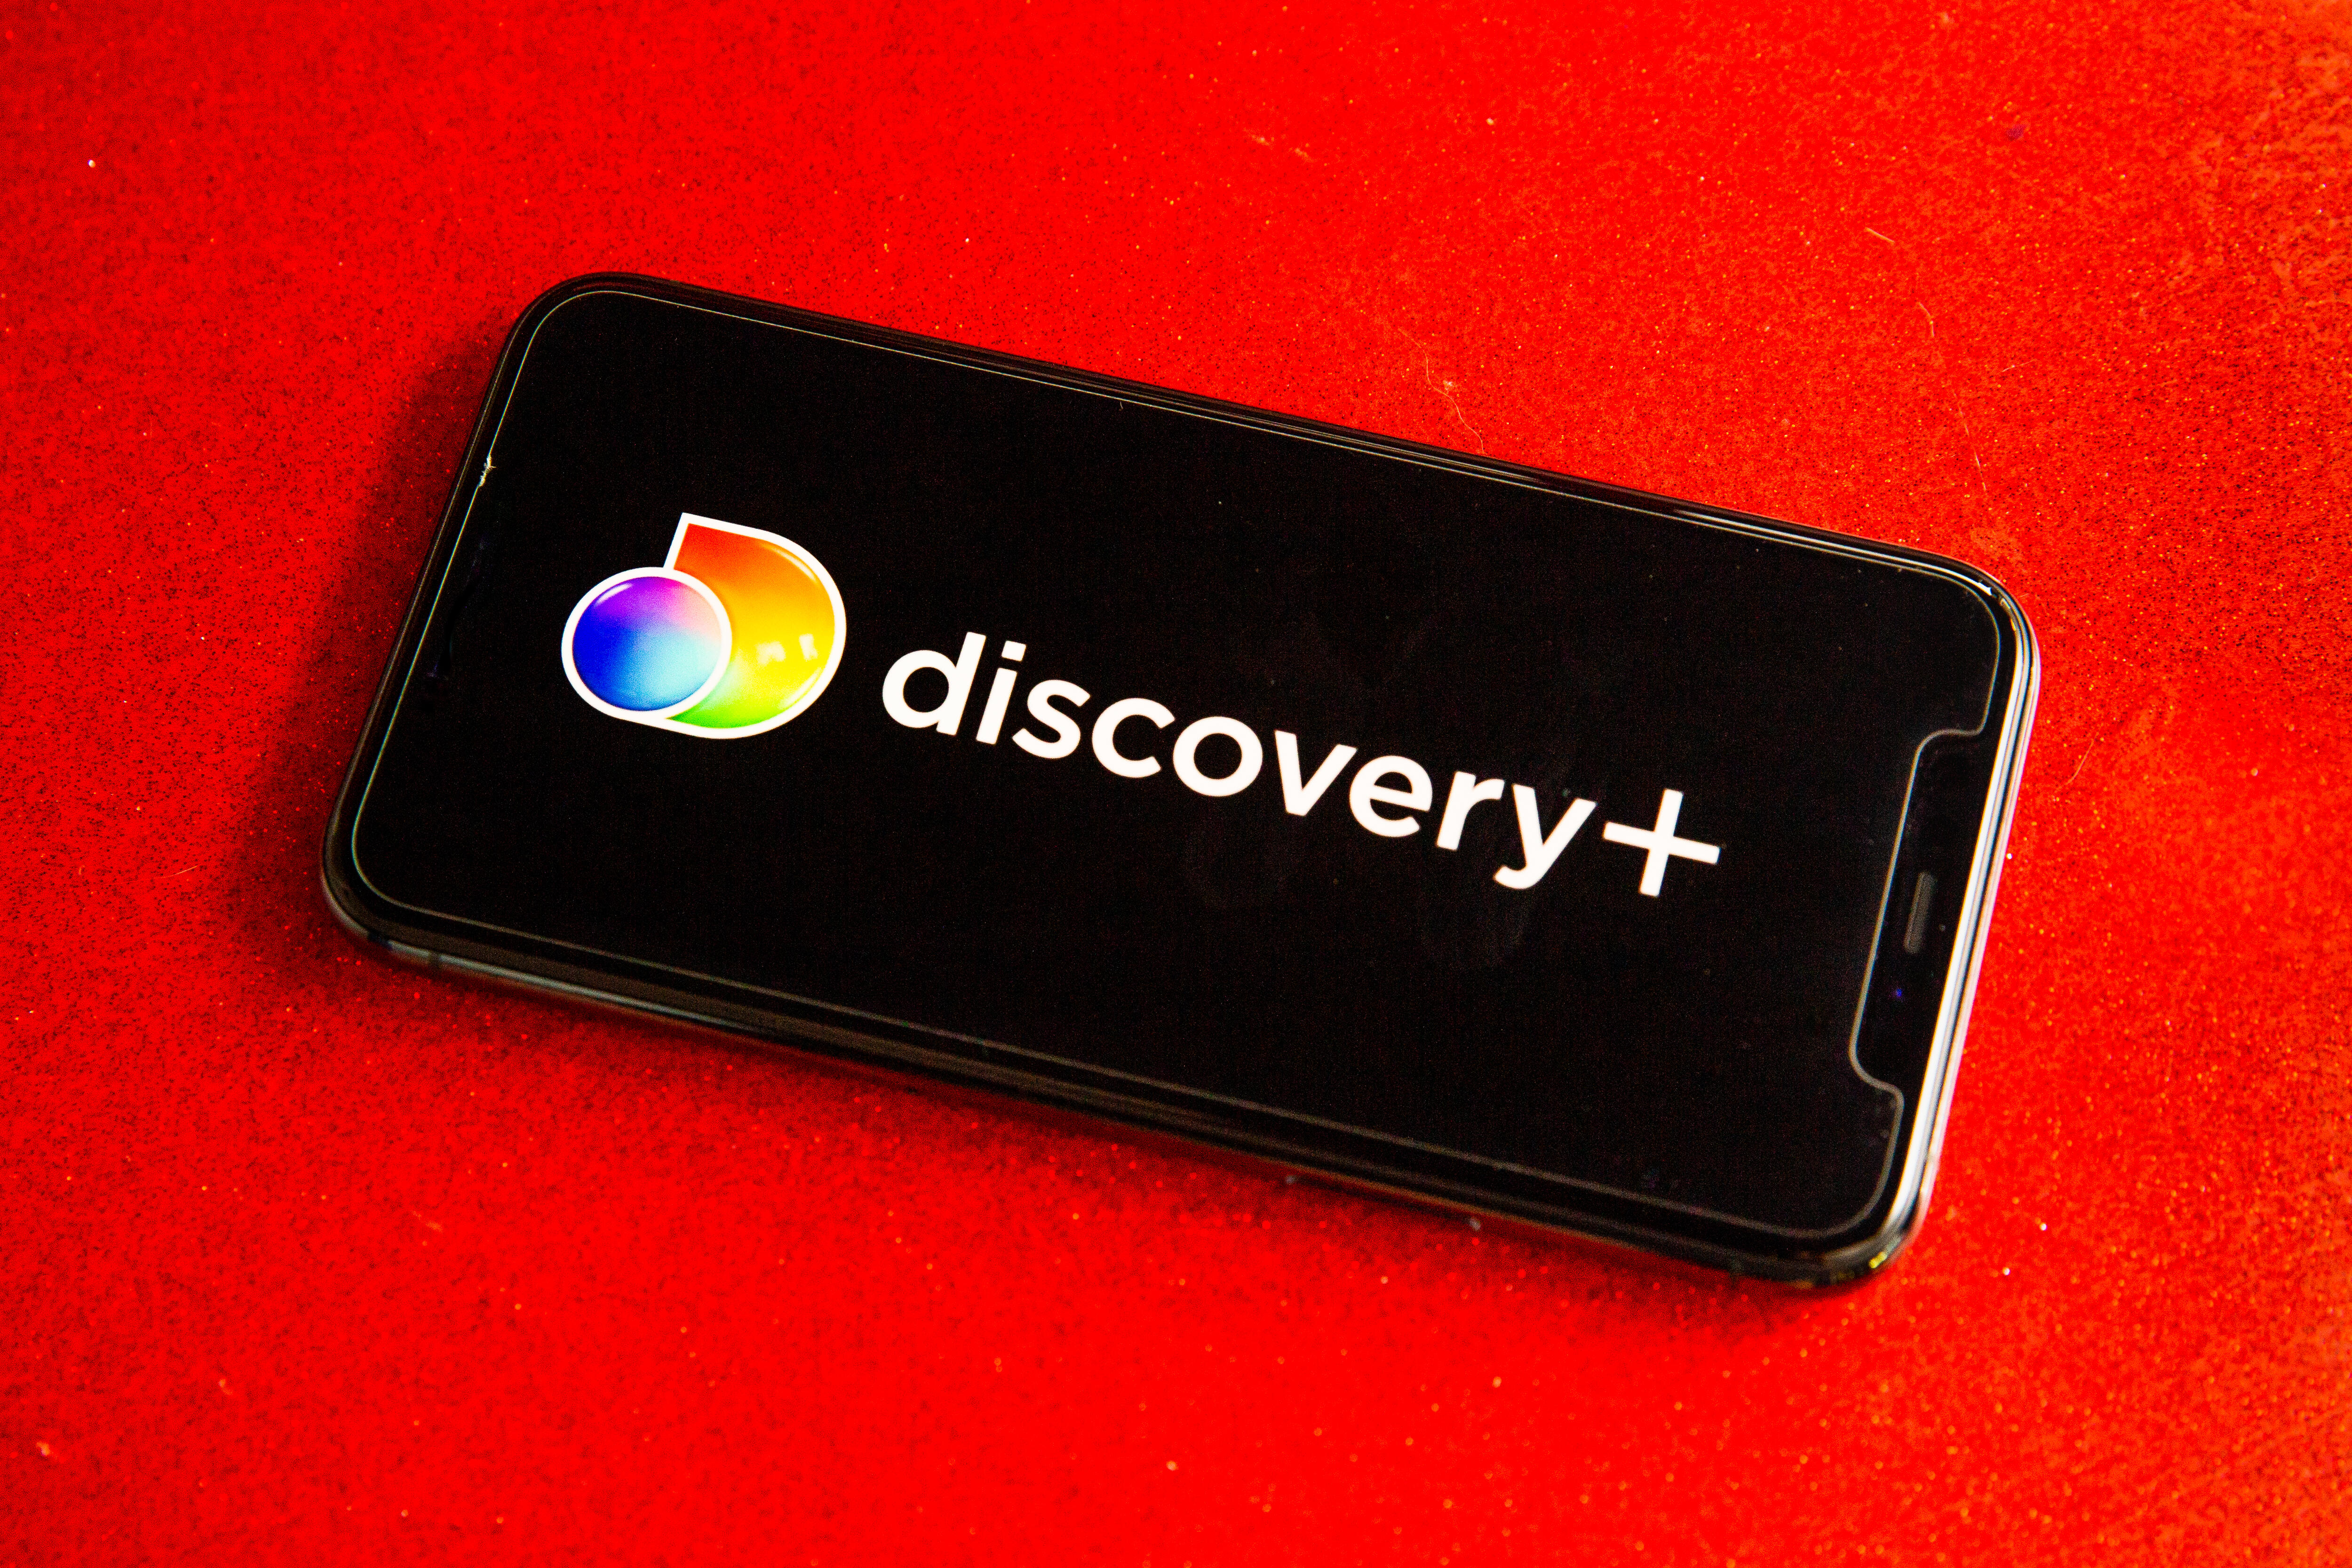 discovery-plus-cnet-2021-002